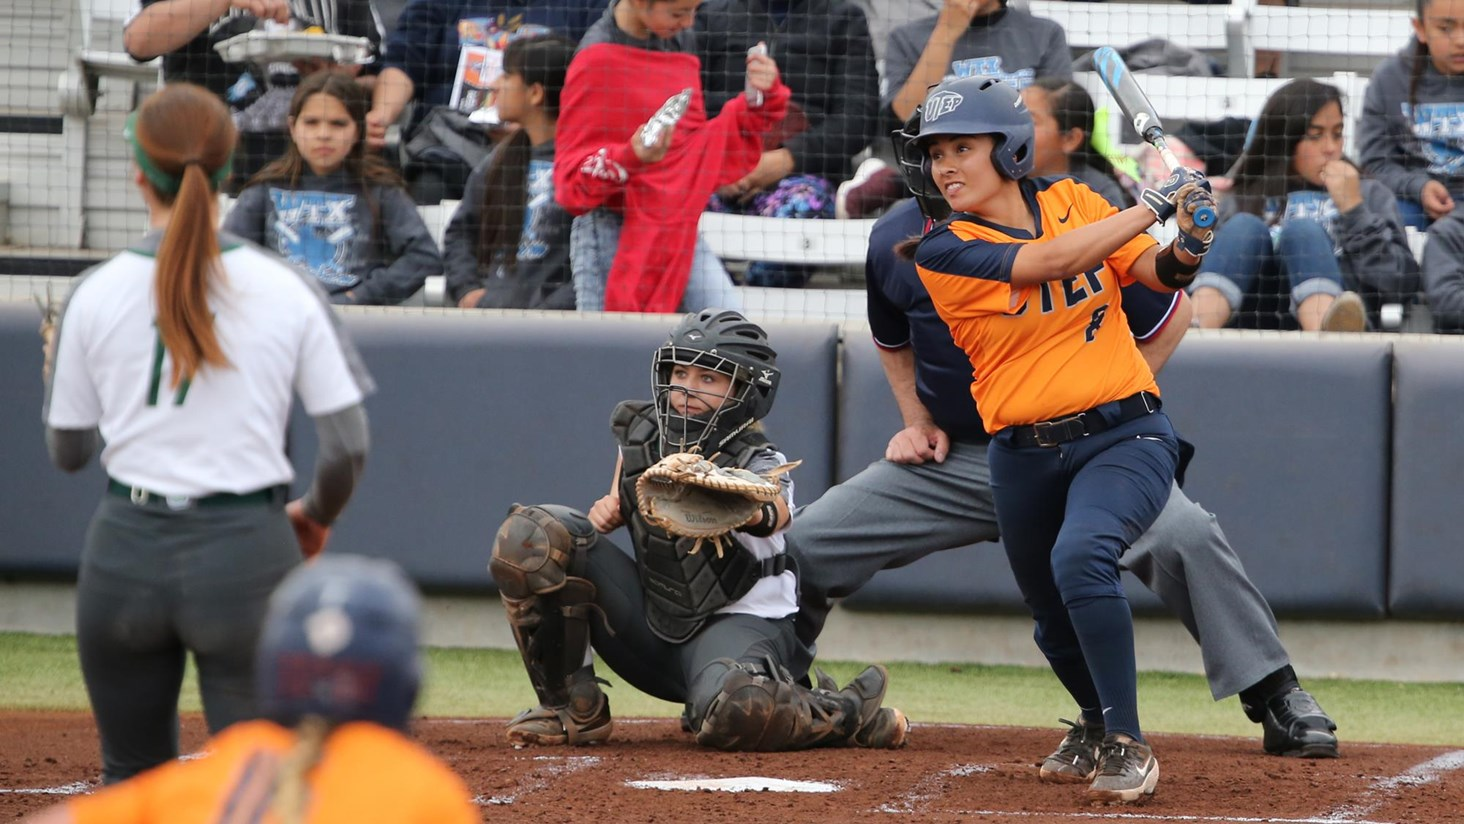 UTEP Softball Takes on Southern Miss in C-USA Matchup - The